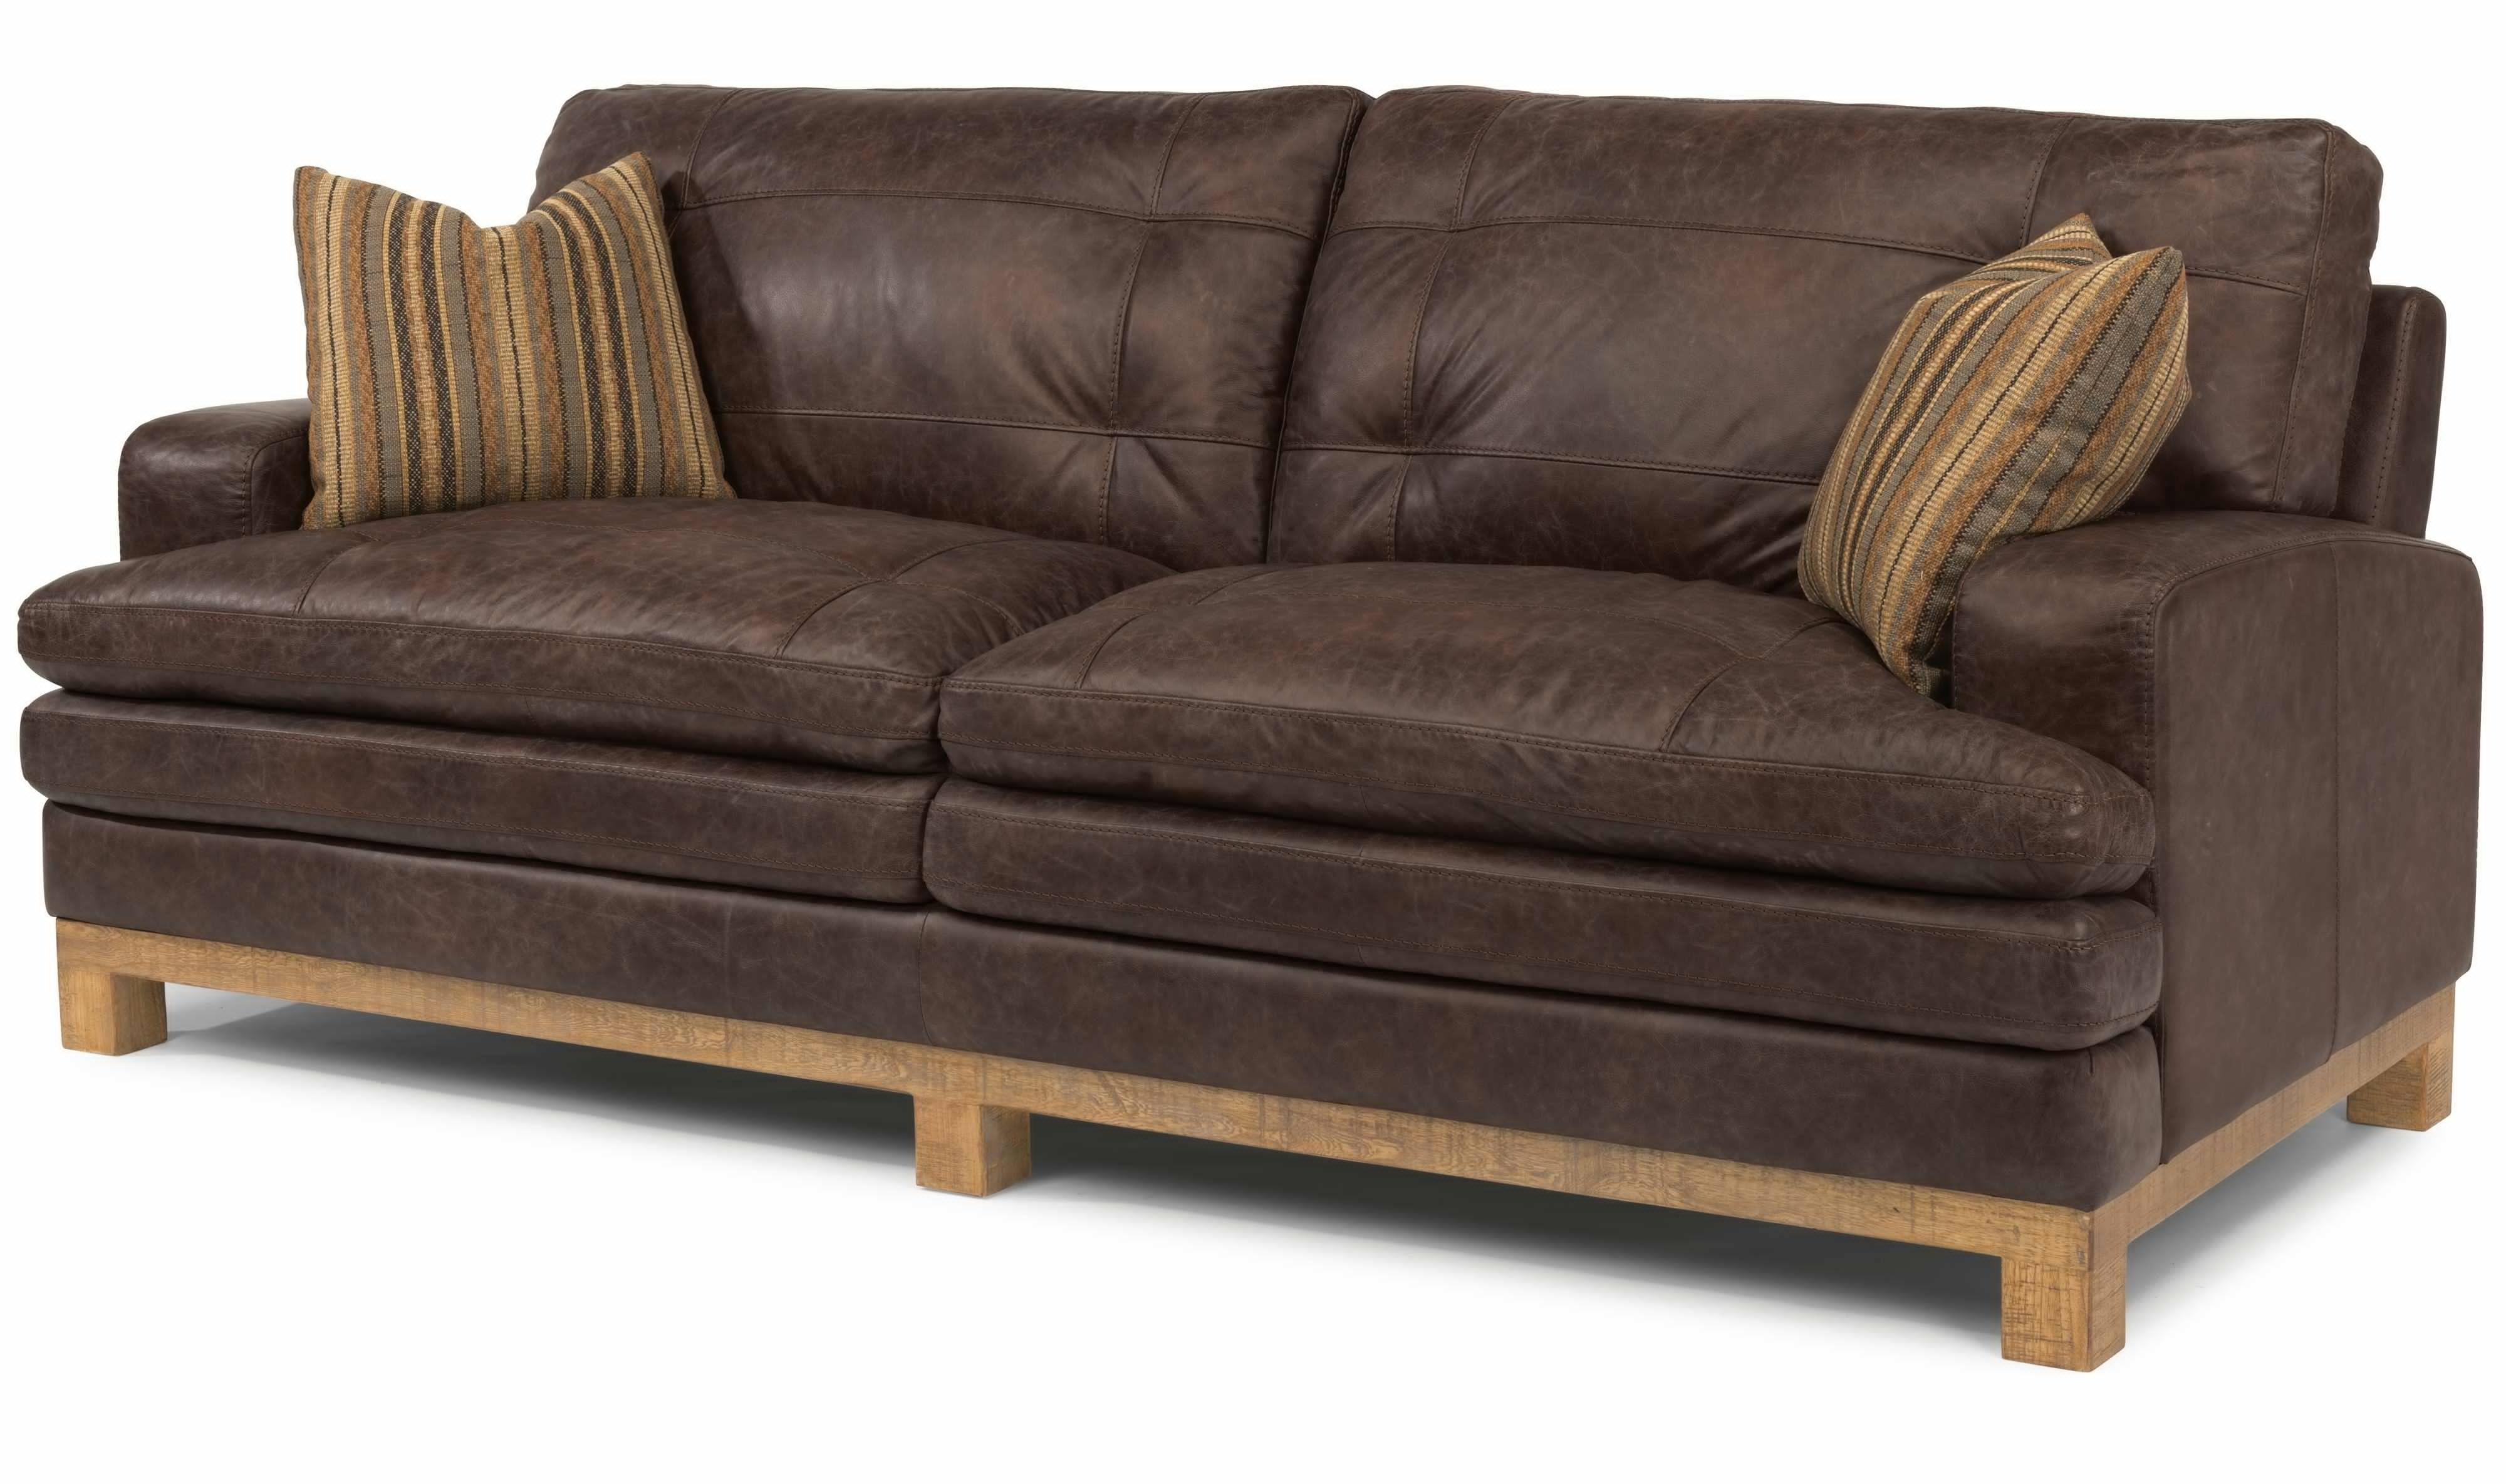 Sectional Sofa Design: Full Grain Leather Sectional Sofa In Most Recently Released Full Grain Leather Sofas (View 5 of 15)